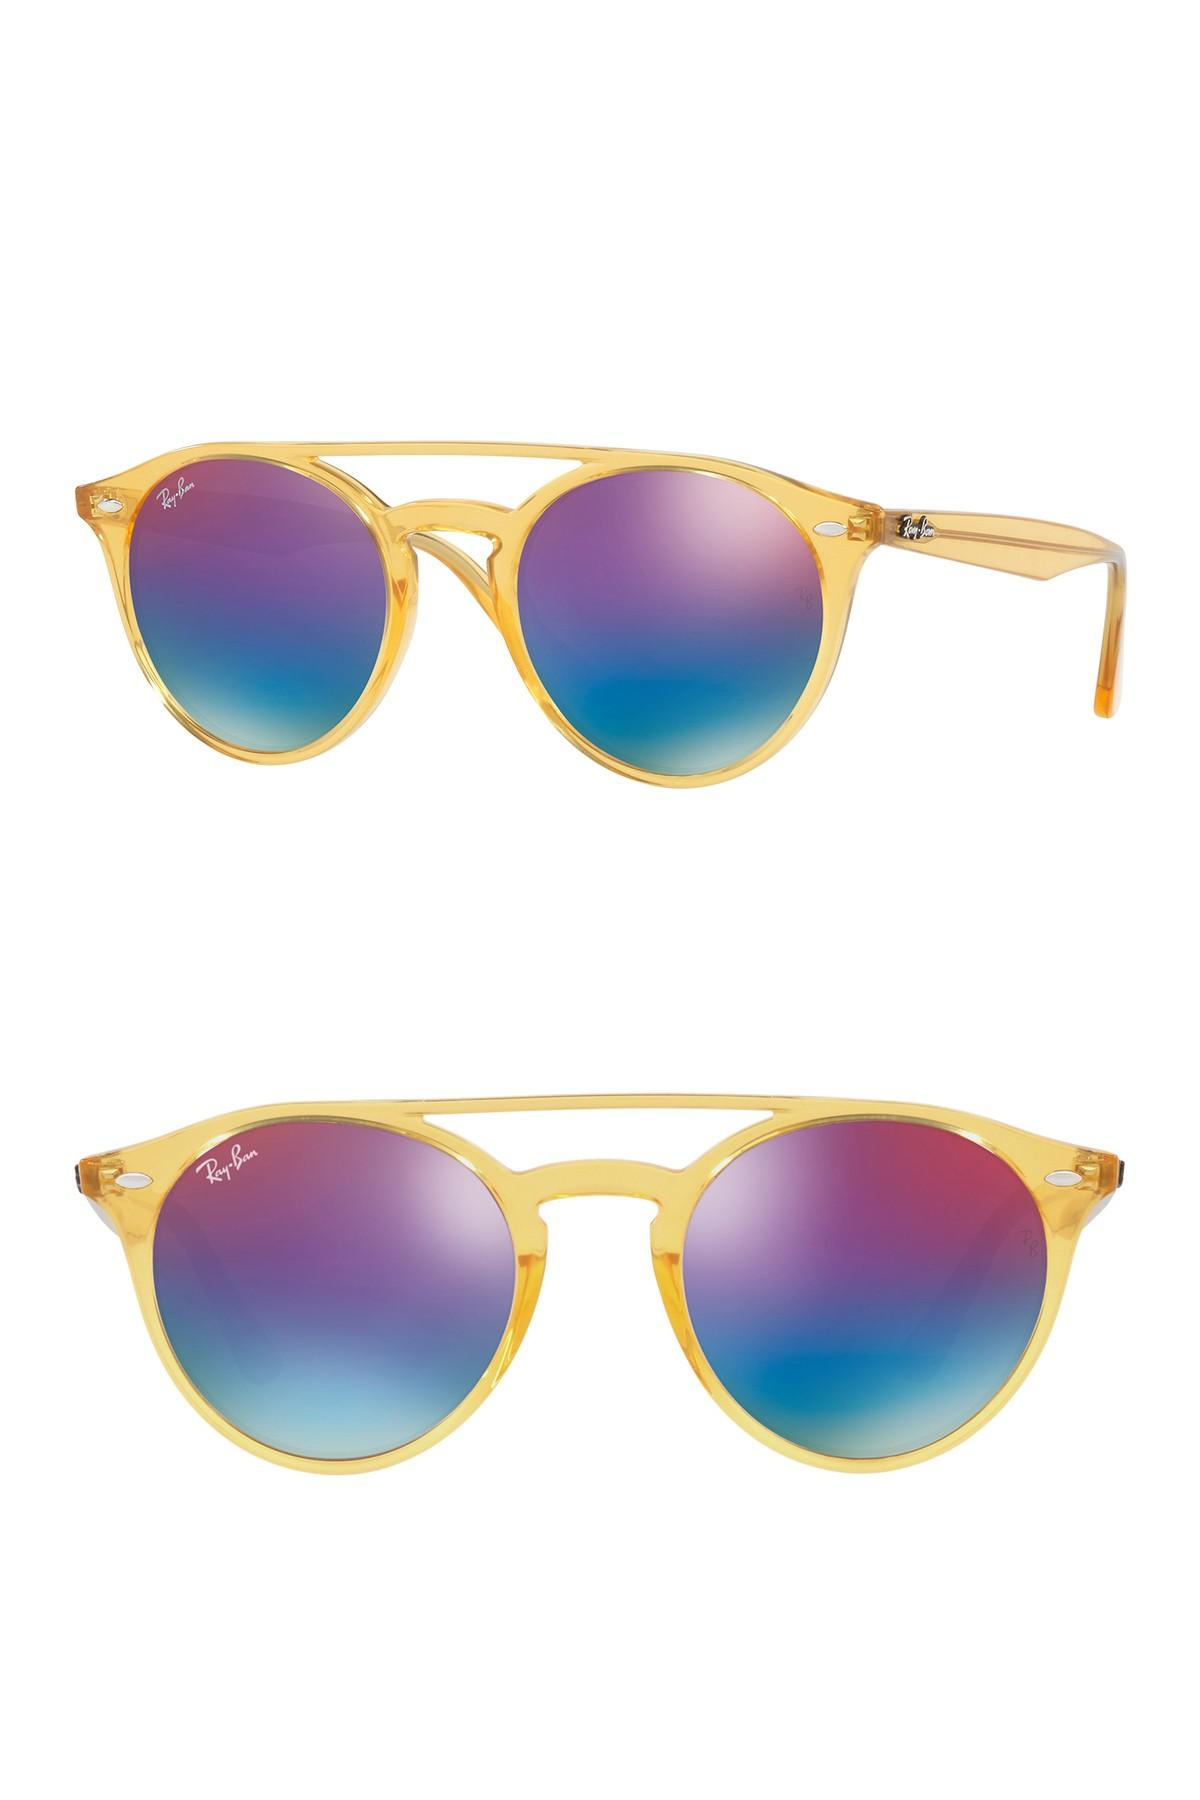 c83d8f4736 Ray-Ban 51mm Mirrored Rainbow Sunglasses in Yellow for Men - Lyst